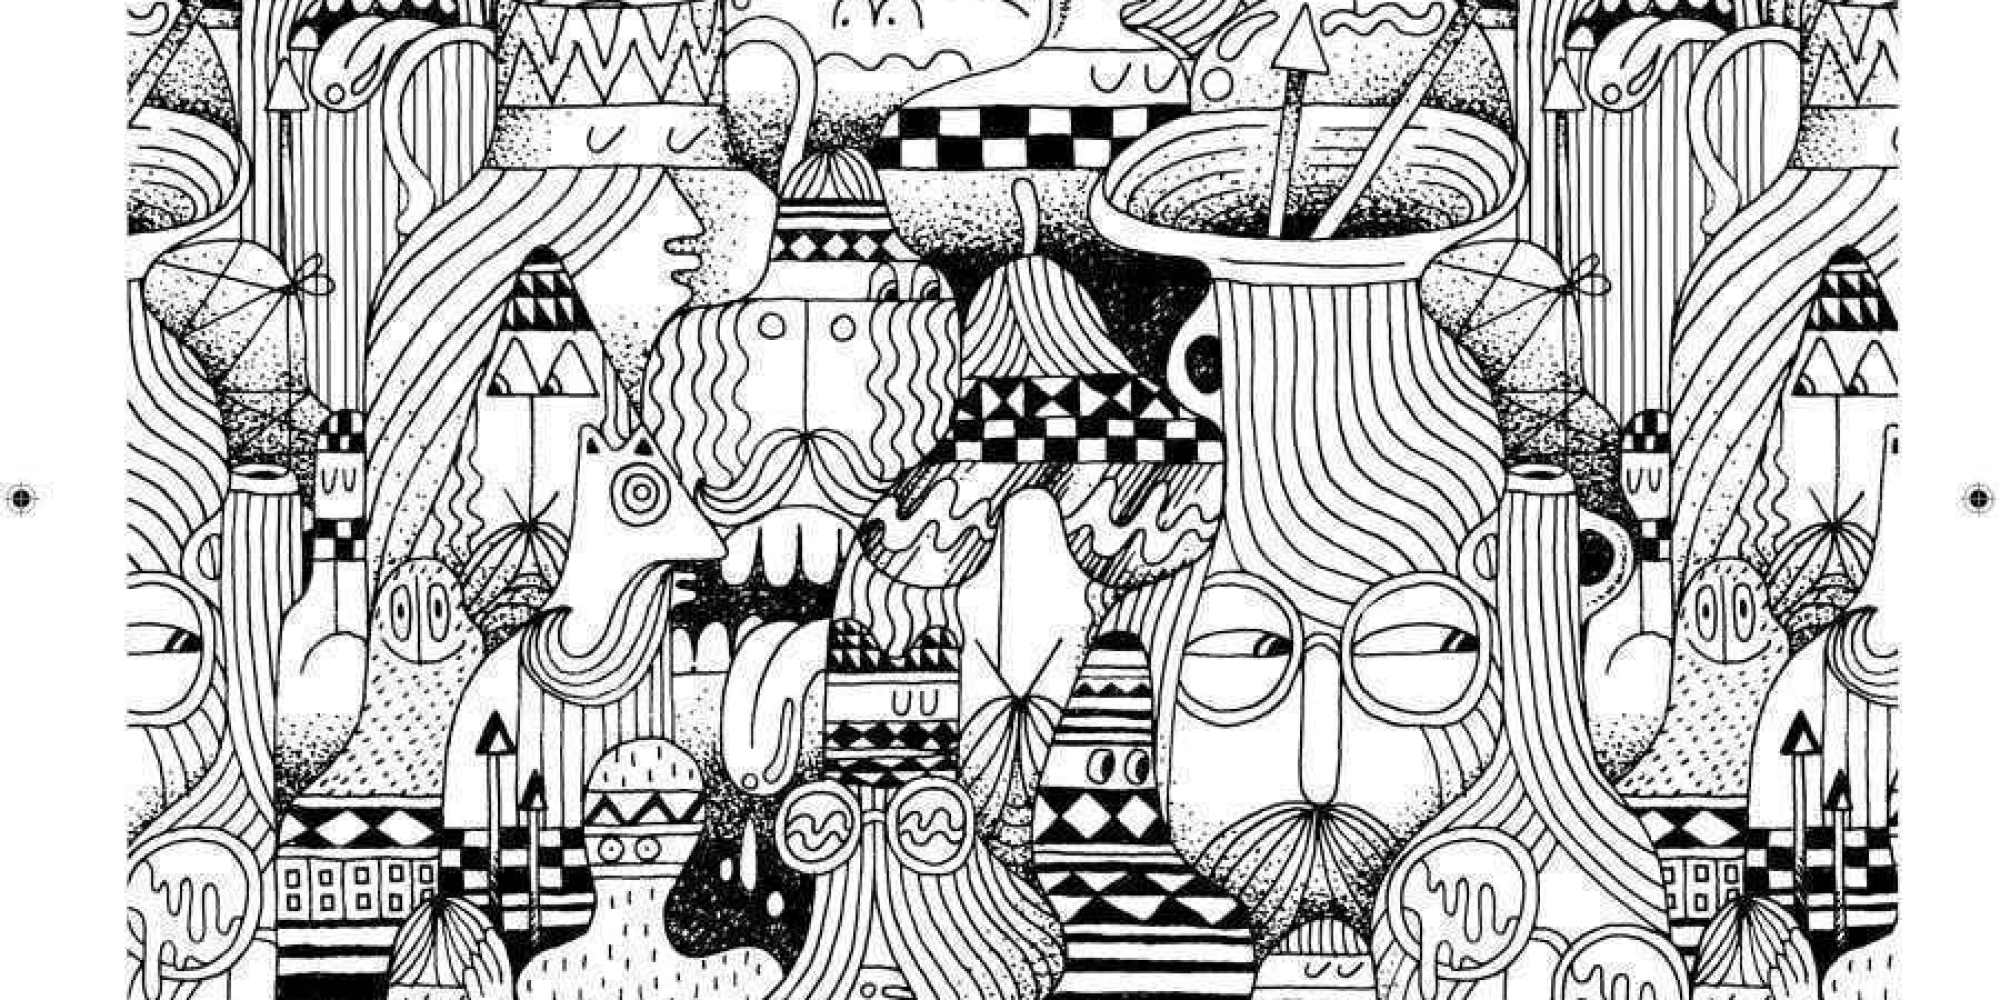 Indie rock coloring book pages - 13 Ways You Can Make Coloring Books A Part Of Your Adult Life Nsfw Huffpost